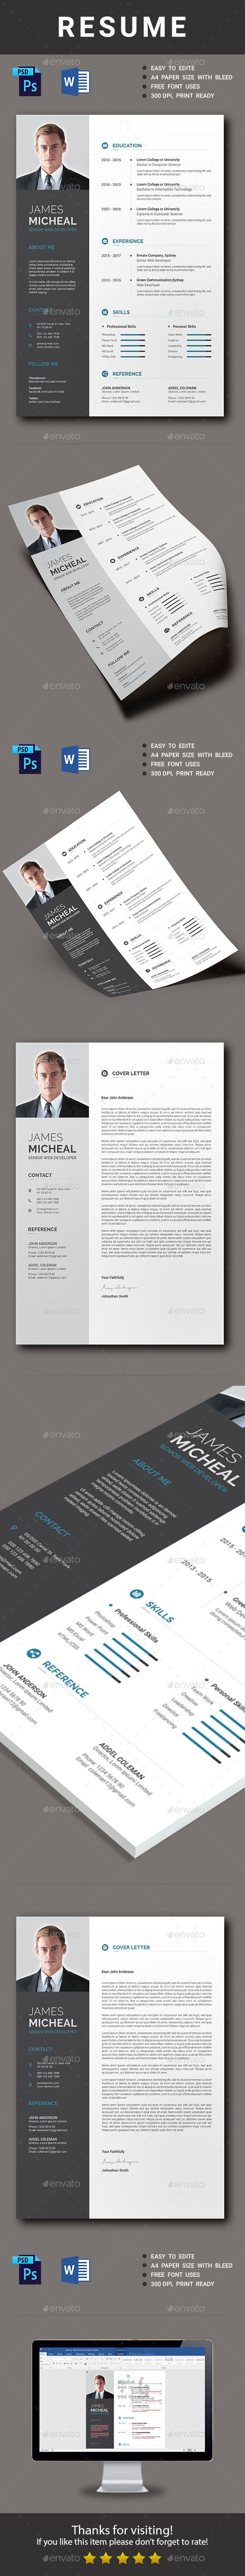 business infographic resume resumes stationery download here